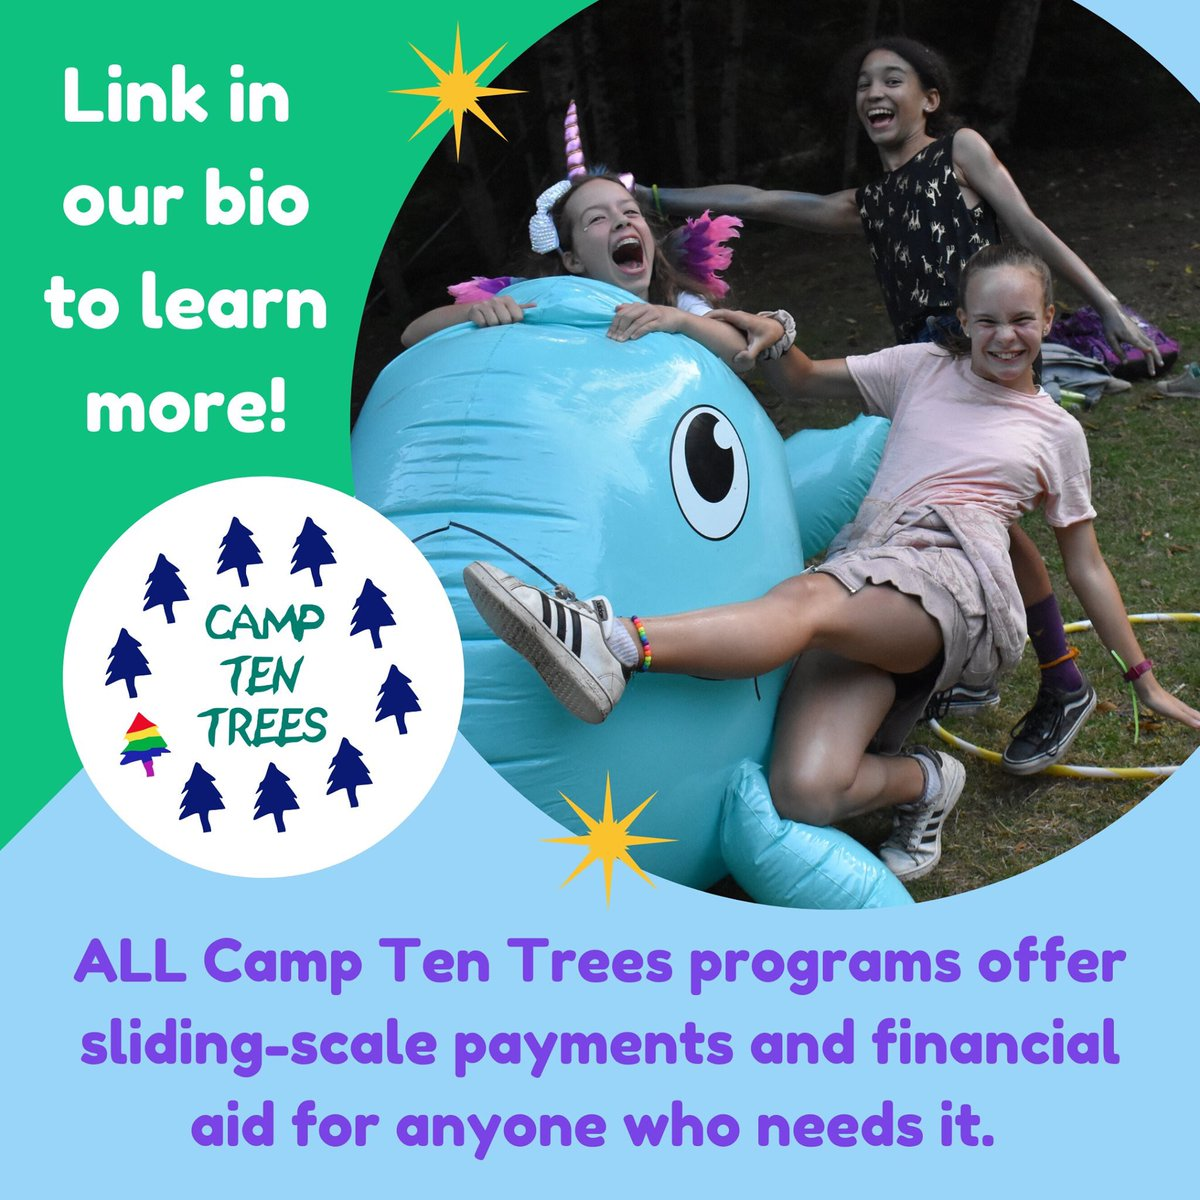 For LGBTQ2S+ youth, youth of LGBTQ2S+ families & non-traditional families ages 8-17! This is also our 2ND year of Trans Camp specifically for transgender, non-binary, & two-spirit youth! https://t.co/y3SGBcWNxq